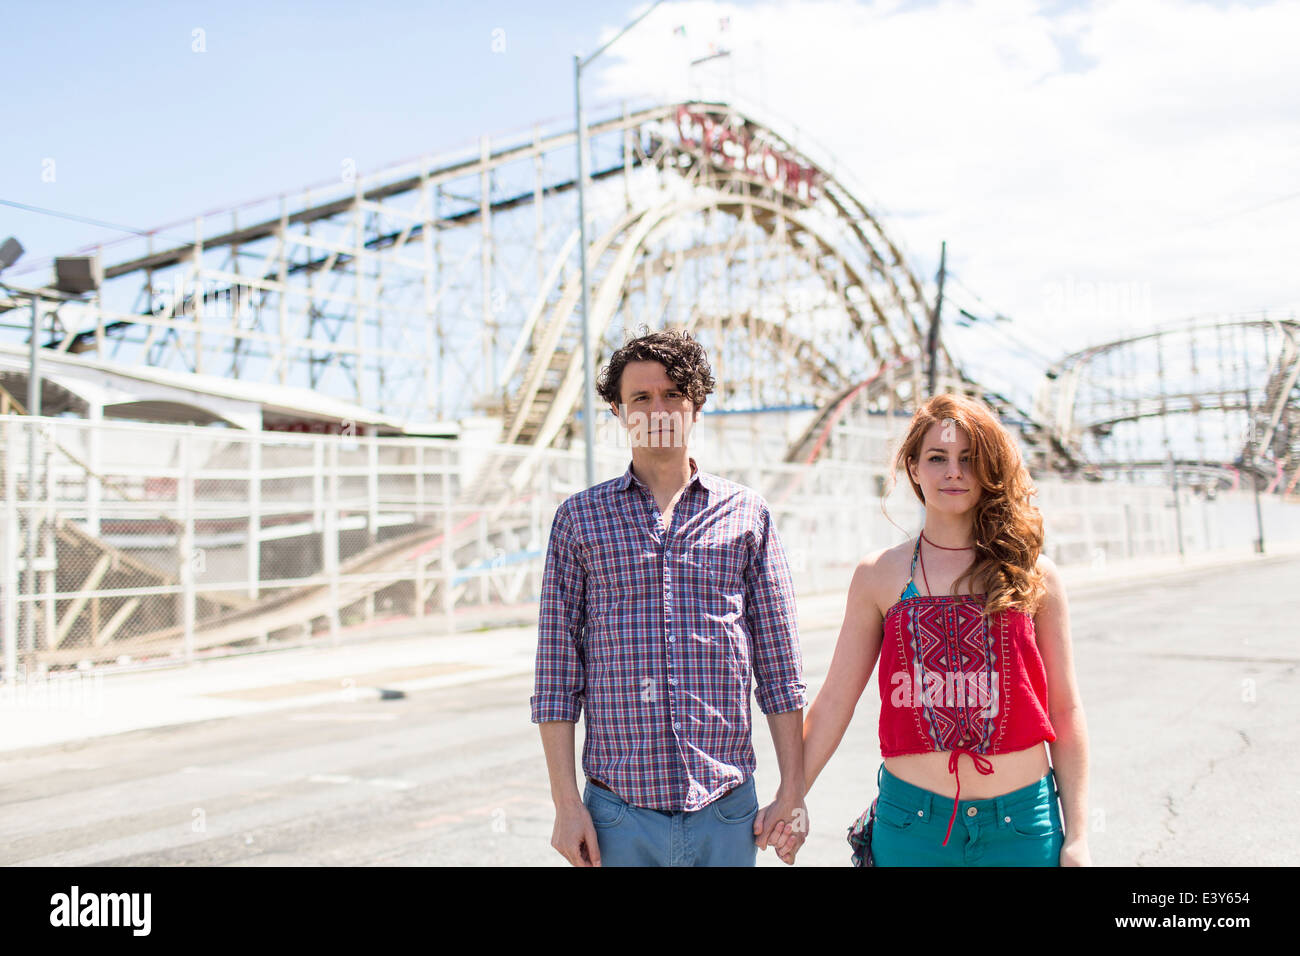 Portrait of couple with blank expressions at amusement park - Stock Image